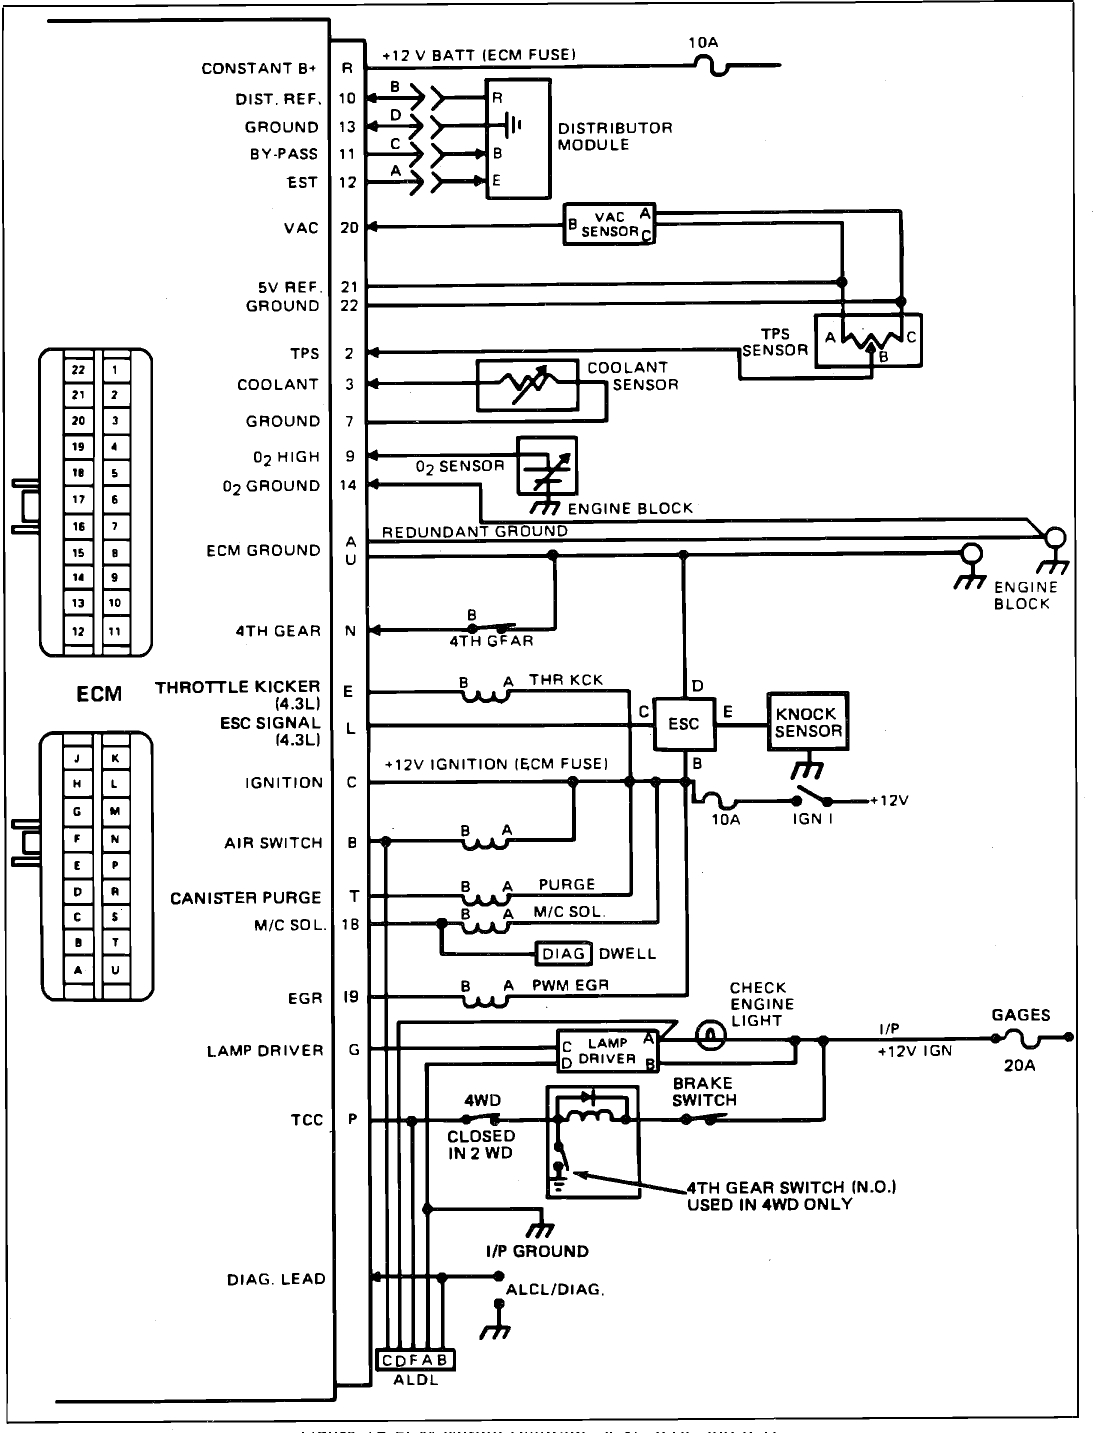 [SCHEMATICS_4HG]  WRG-6760] Chevy Van G20 Wiring Diagram | Chevy Van G30 Fuse Box |  | mx.tl